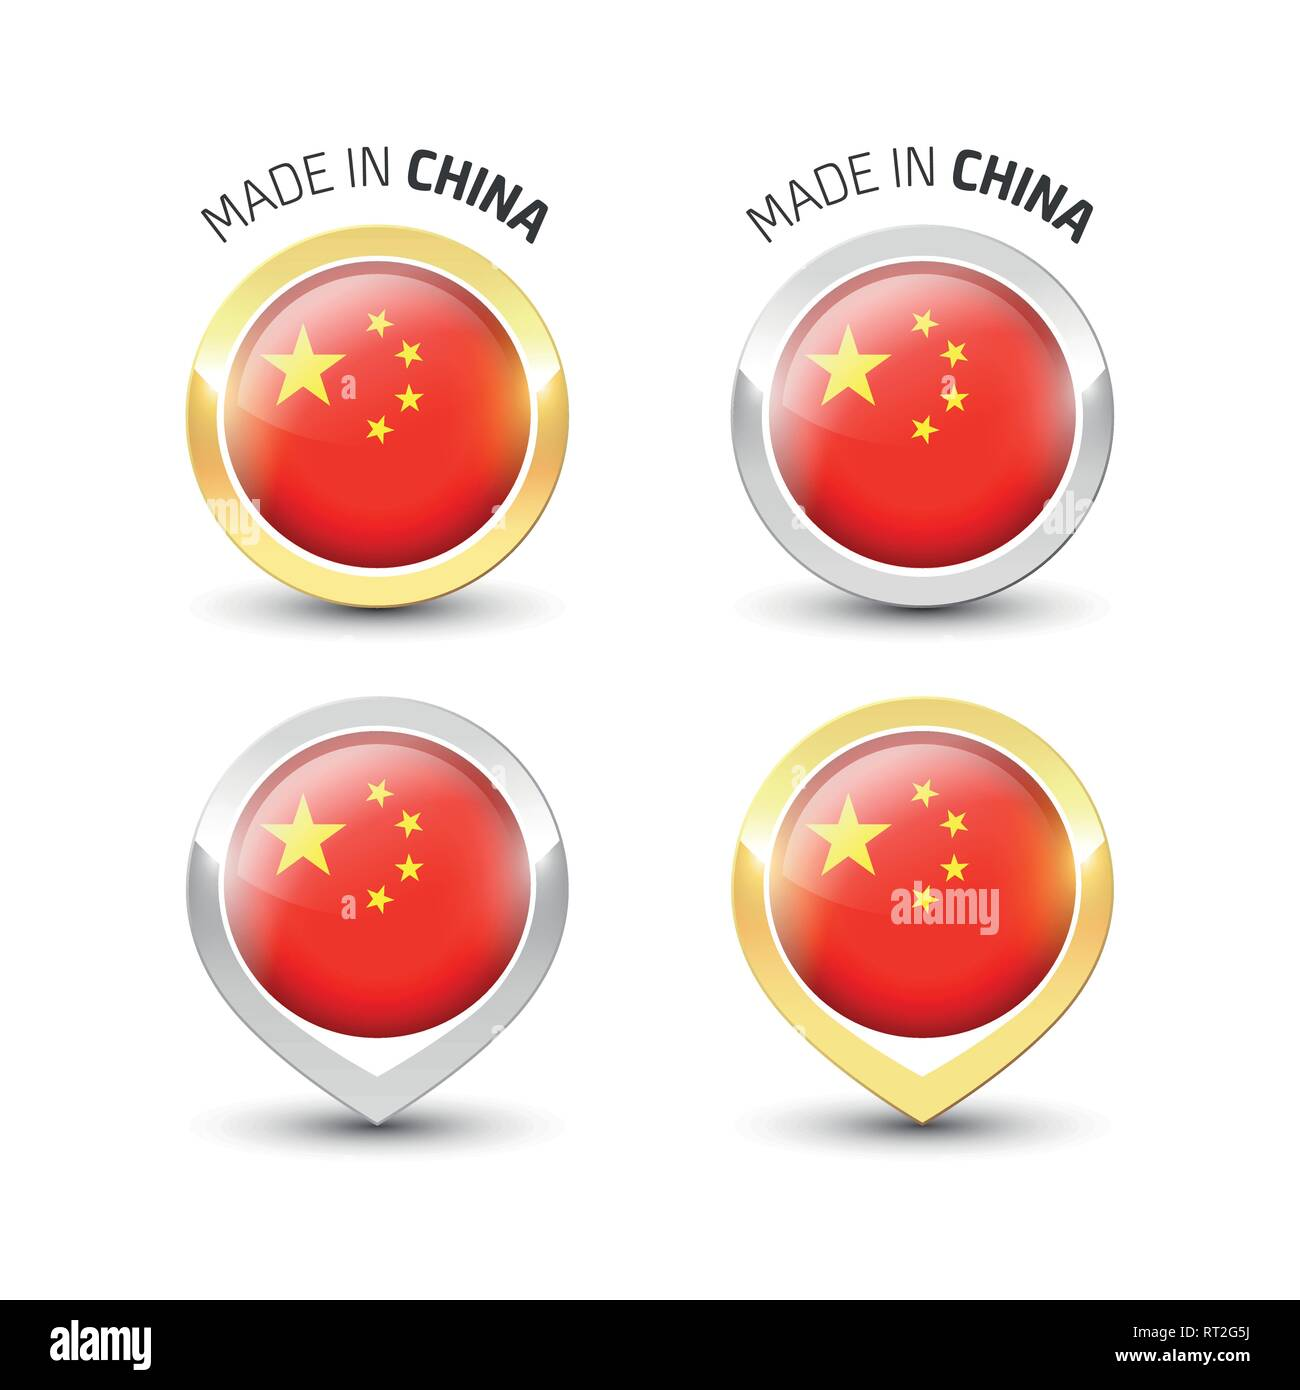 Made In China Guarantee Label With The Chinese Flag Inside Round Gold And Silver Icons Stock Vector Image Art Alamy